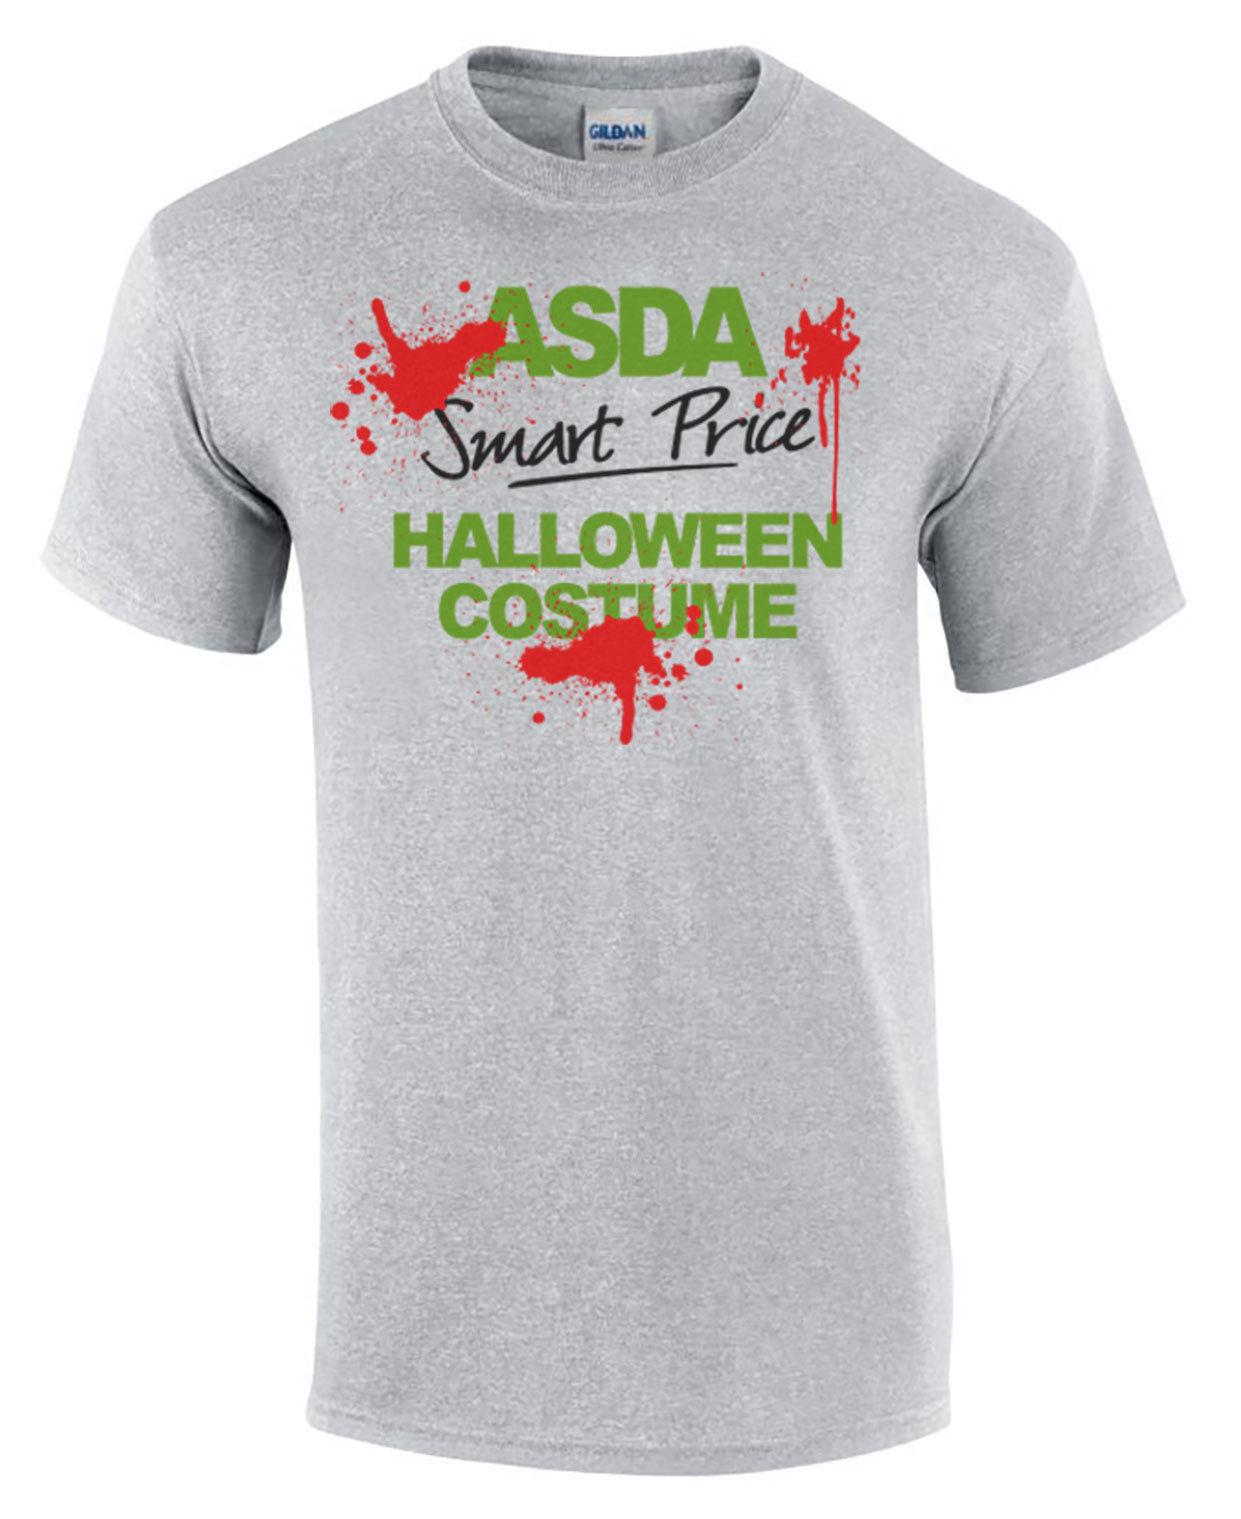 ad70de47 Funny Halloween T-Shirt ASDA SMART PRICE Costume Blood Splat Men's Comedy  ShirtFunny free shipping Unisex Casual Tshirt